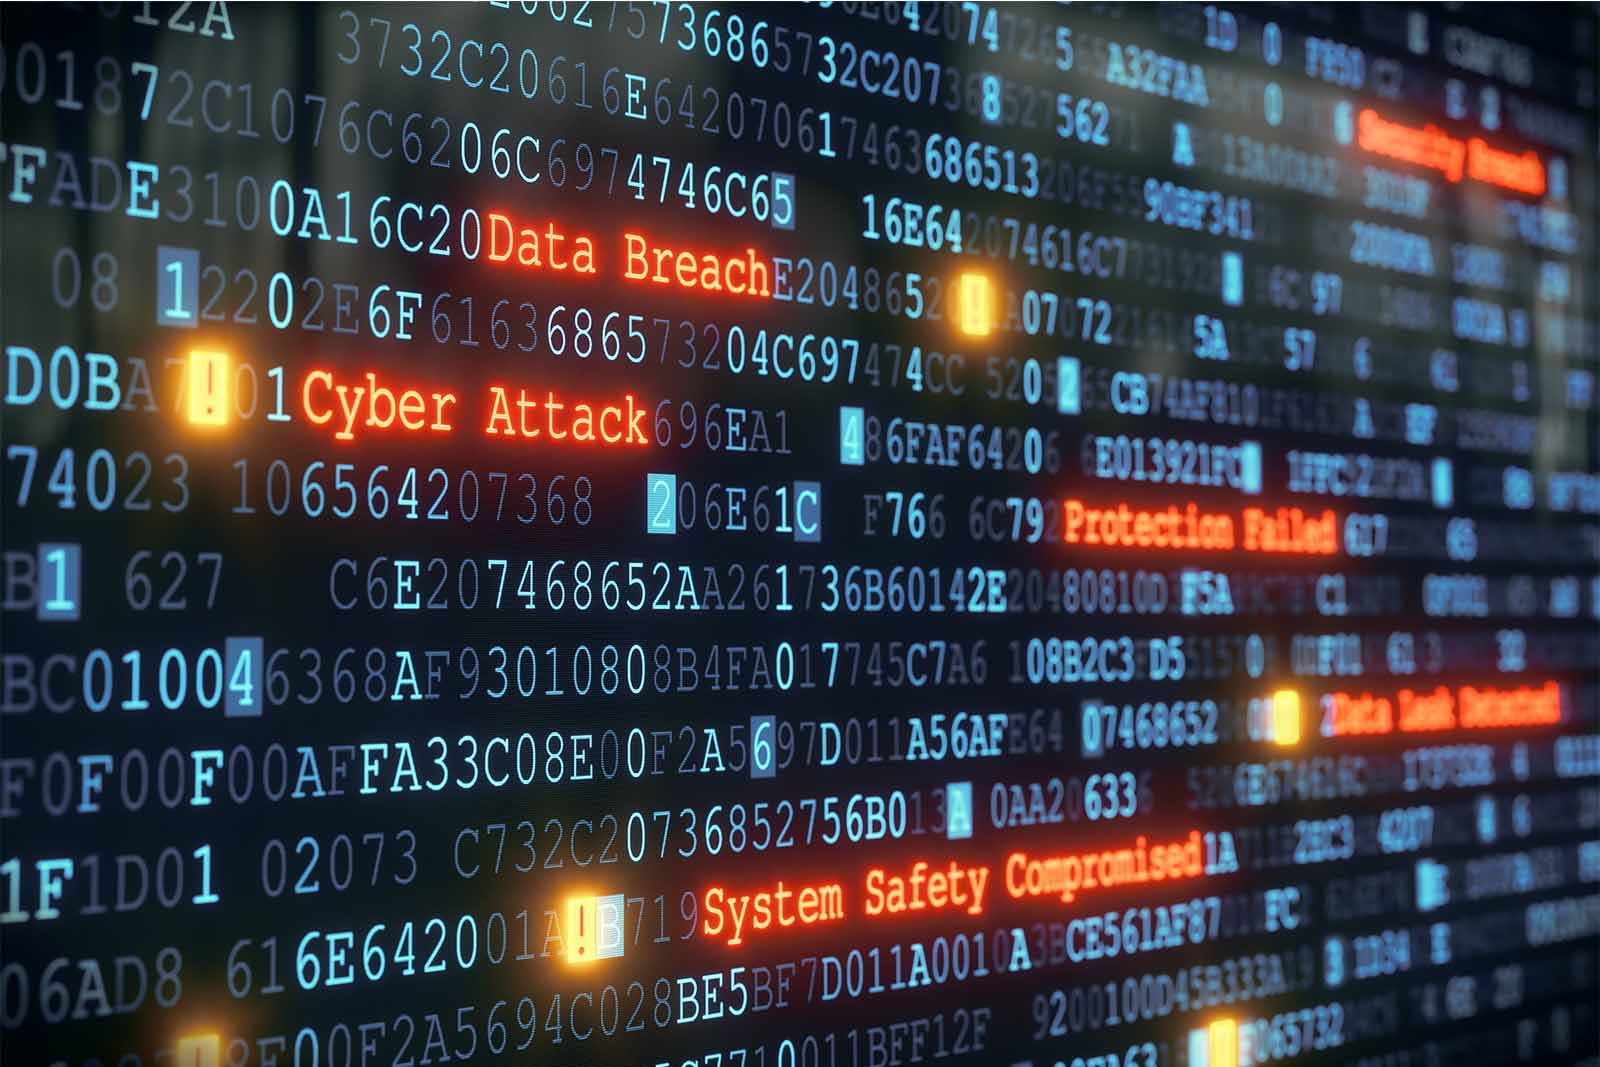 Data board showing reports of cyber attack and system safety compromised.